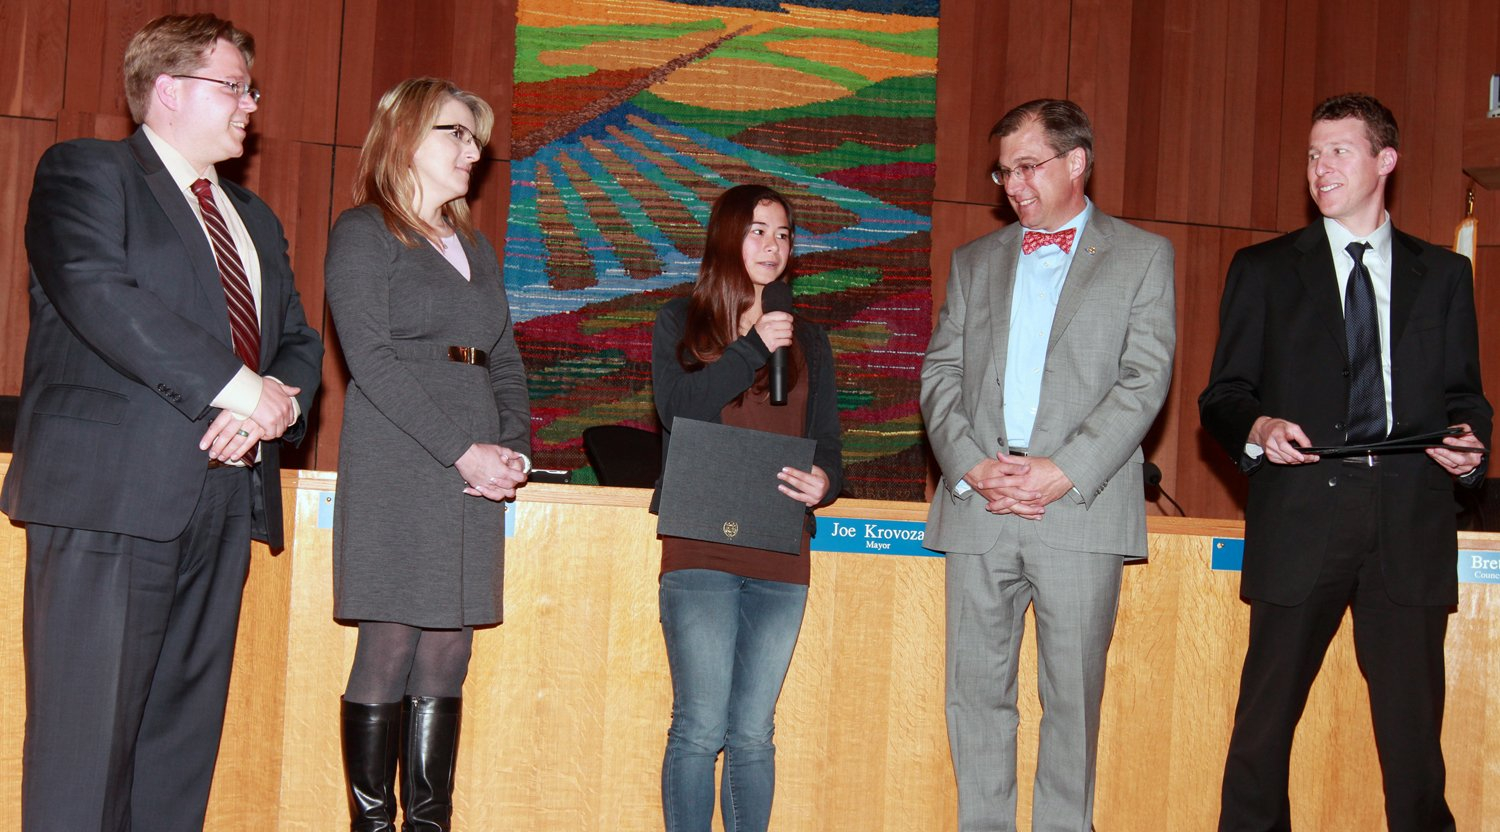 Michaela Saechow  receives her Golden Heart Award from  City Council members,  from left, Lucas Frerichs, Rochelle Swanson, Joe Krovoza and Dan Wolk.  Fred Gladdis/ Enterprise photos